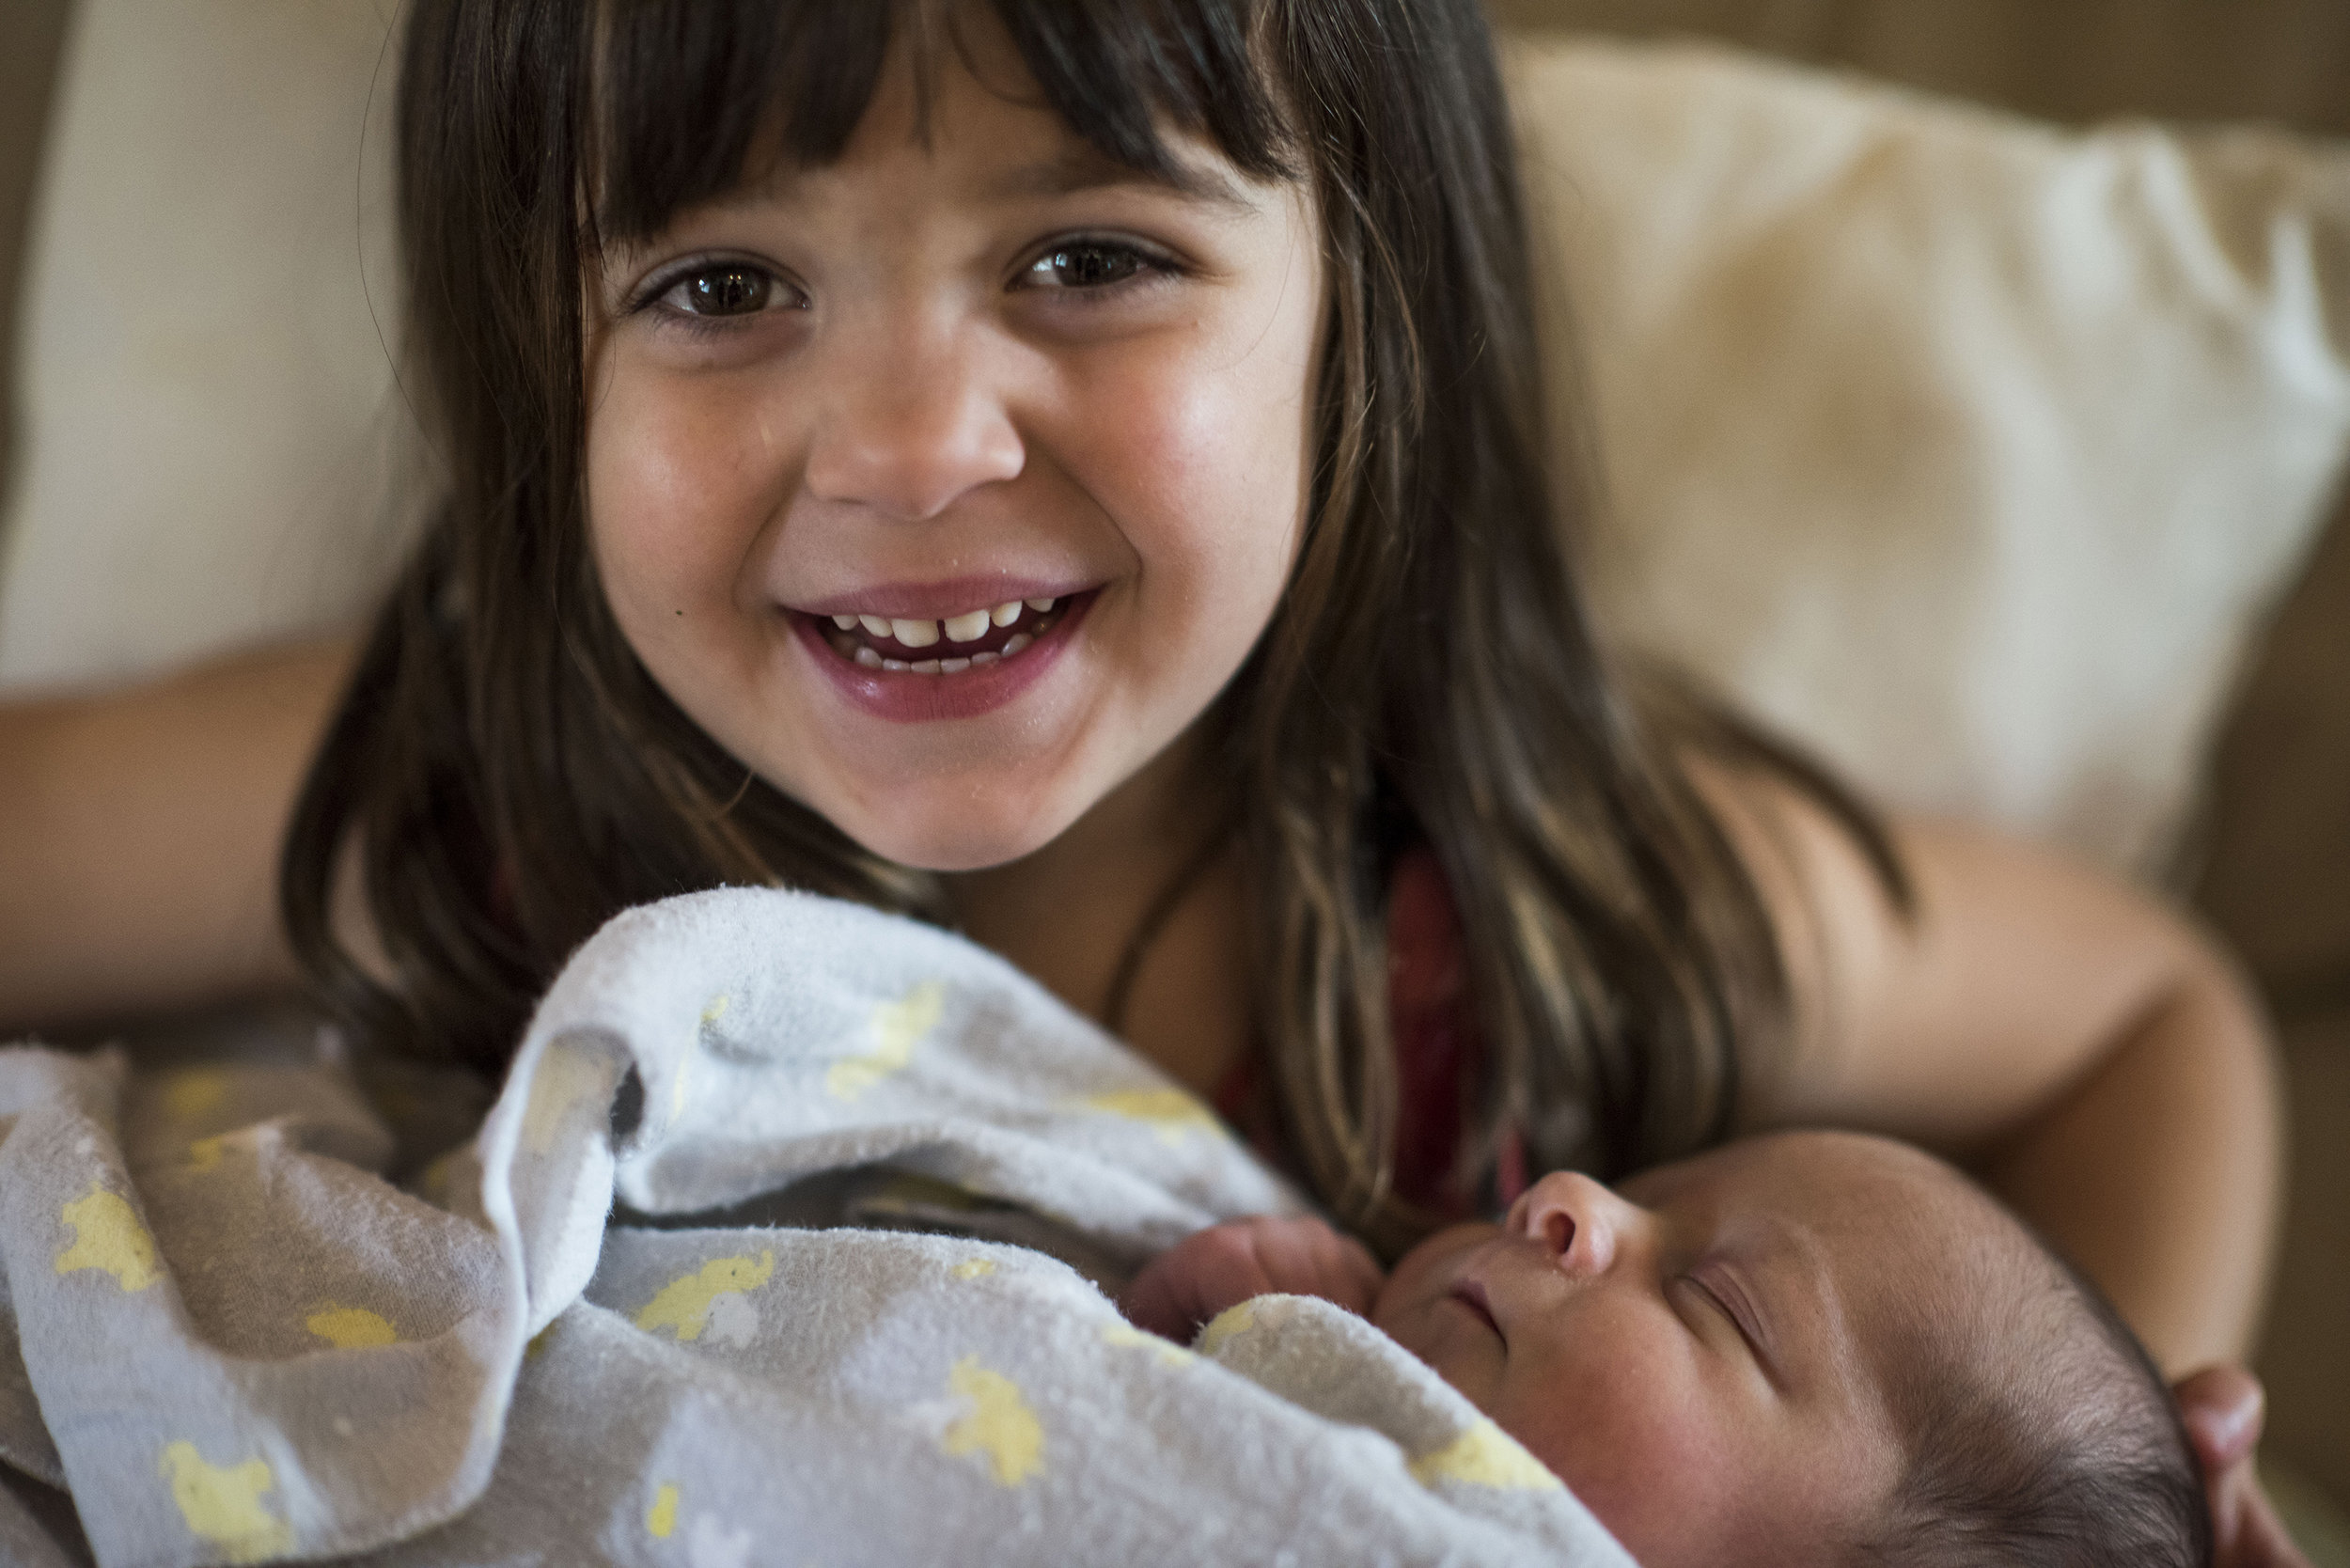 Sofia, now 3.5 years old, holds her baby brother, James.